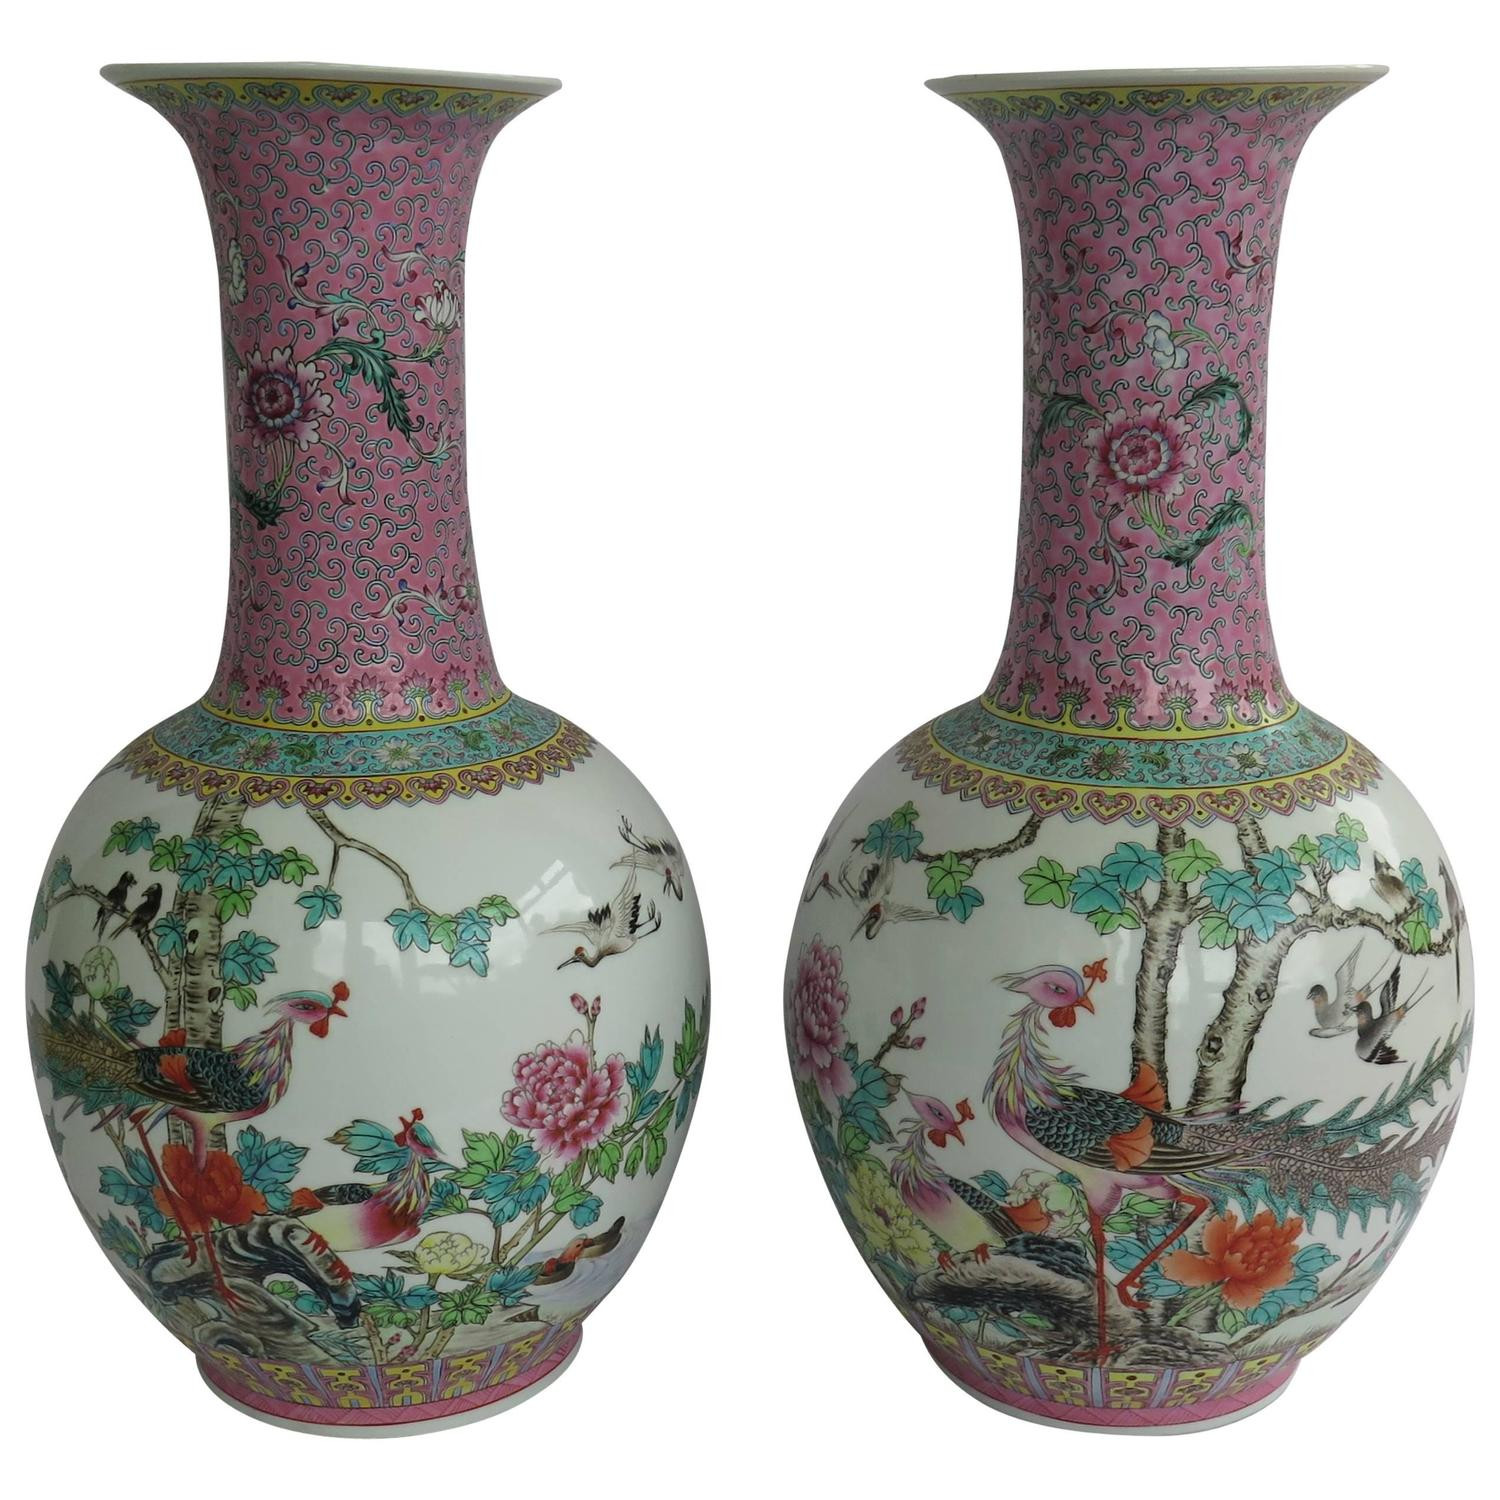 antique chinese vases for sale of pair of chinese antique canton famille rose porcelain vases for sale intended for pair of chinese antique canton famille rose porcelain vases for sale at 1stdibs